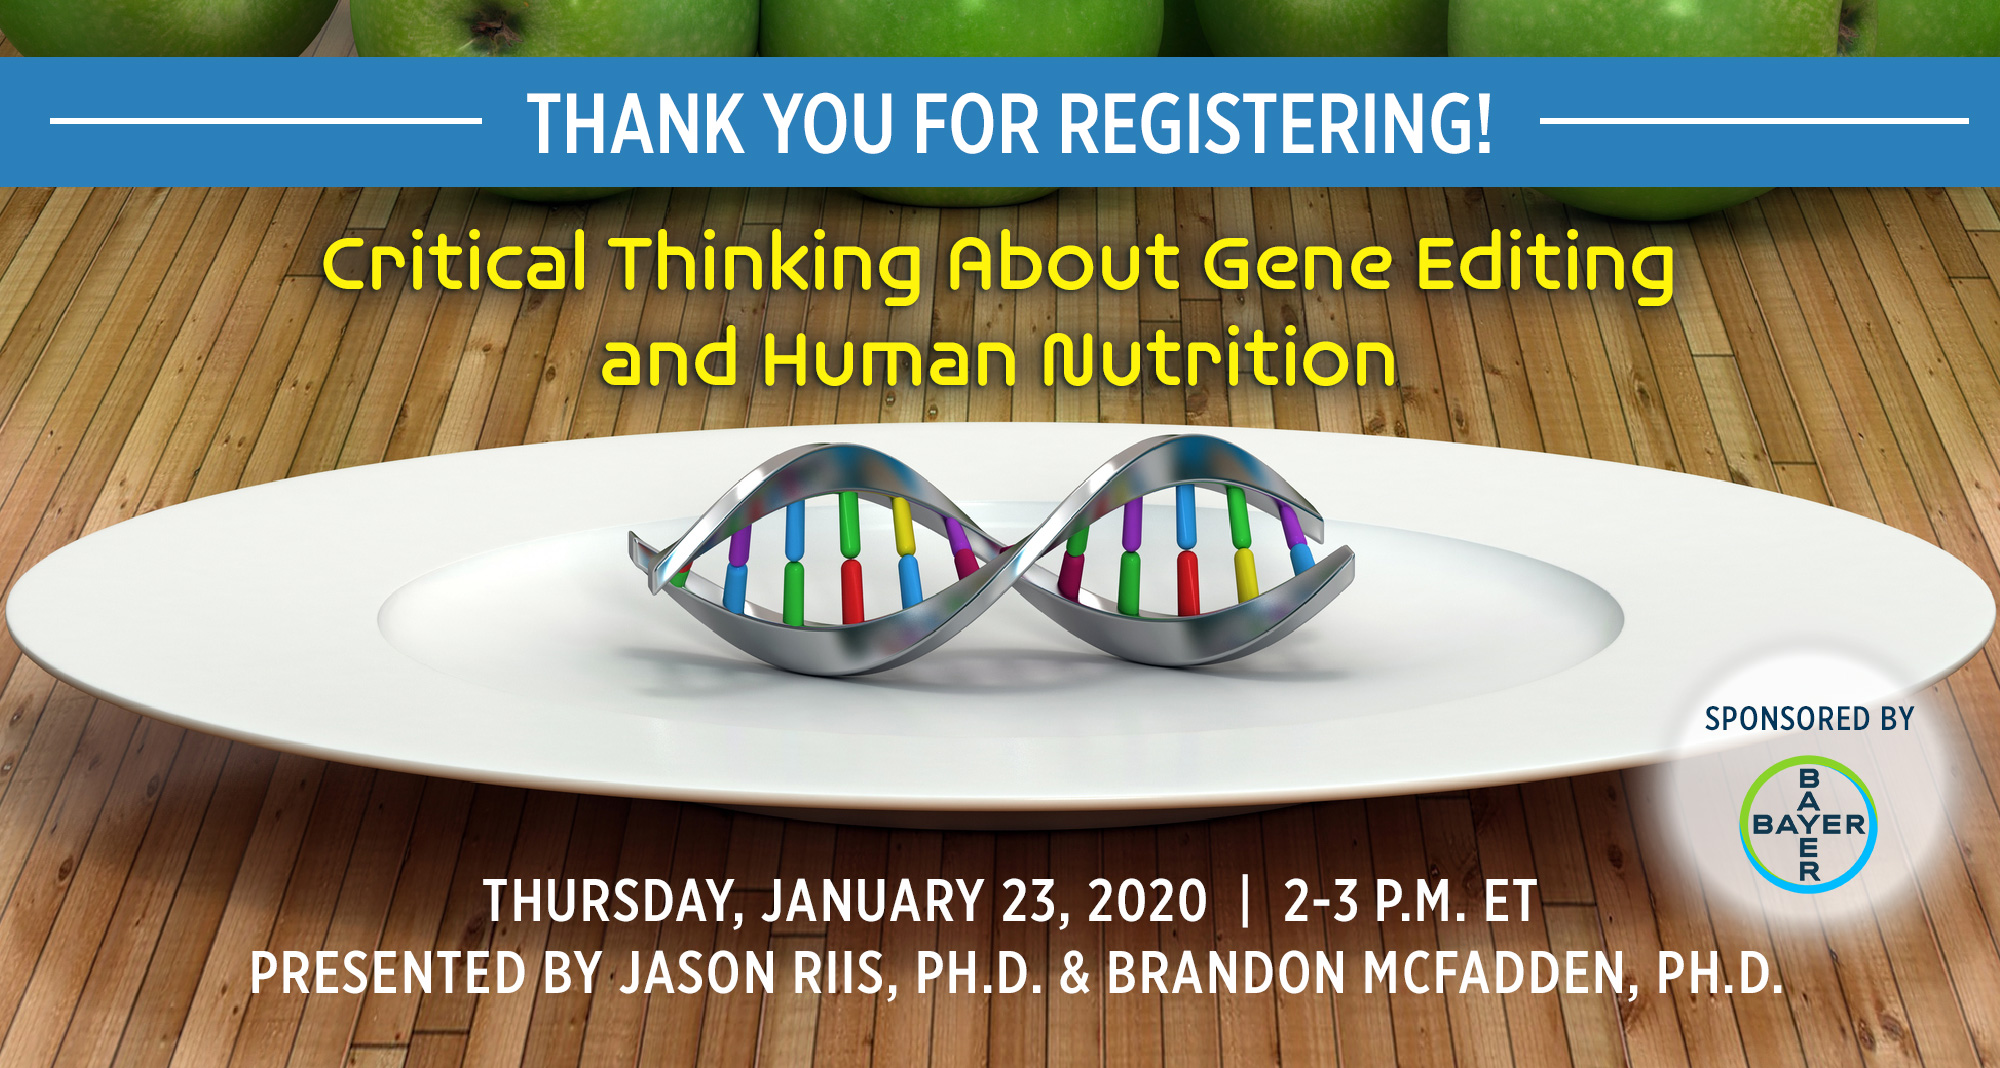 Thank You For Registering! Critical Thinking About Gene Editing and Human Nutrition | Presented by Jason Riis, PH.D. & Brandon McFadden, PH.D.| Thursday, January 23, 2020, from 2-3 P.M. ET | Earn 1 CEU Free